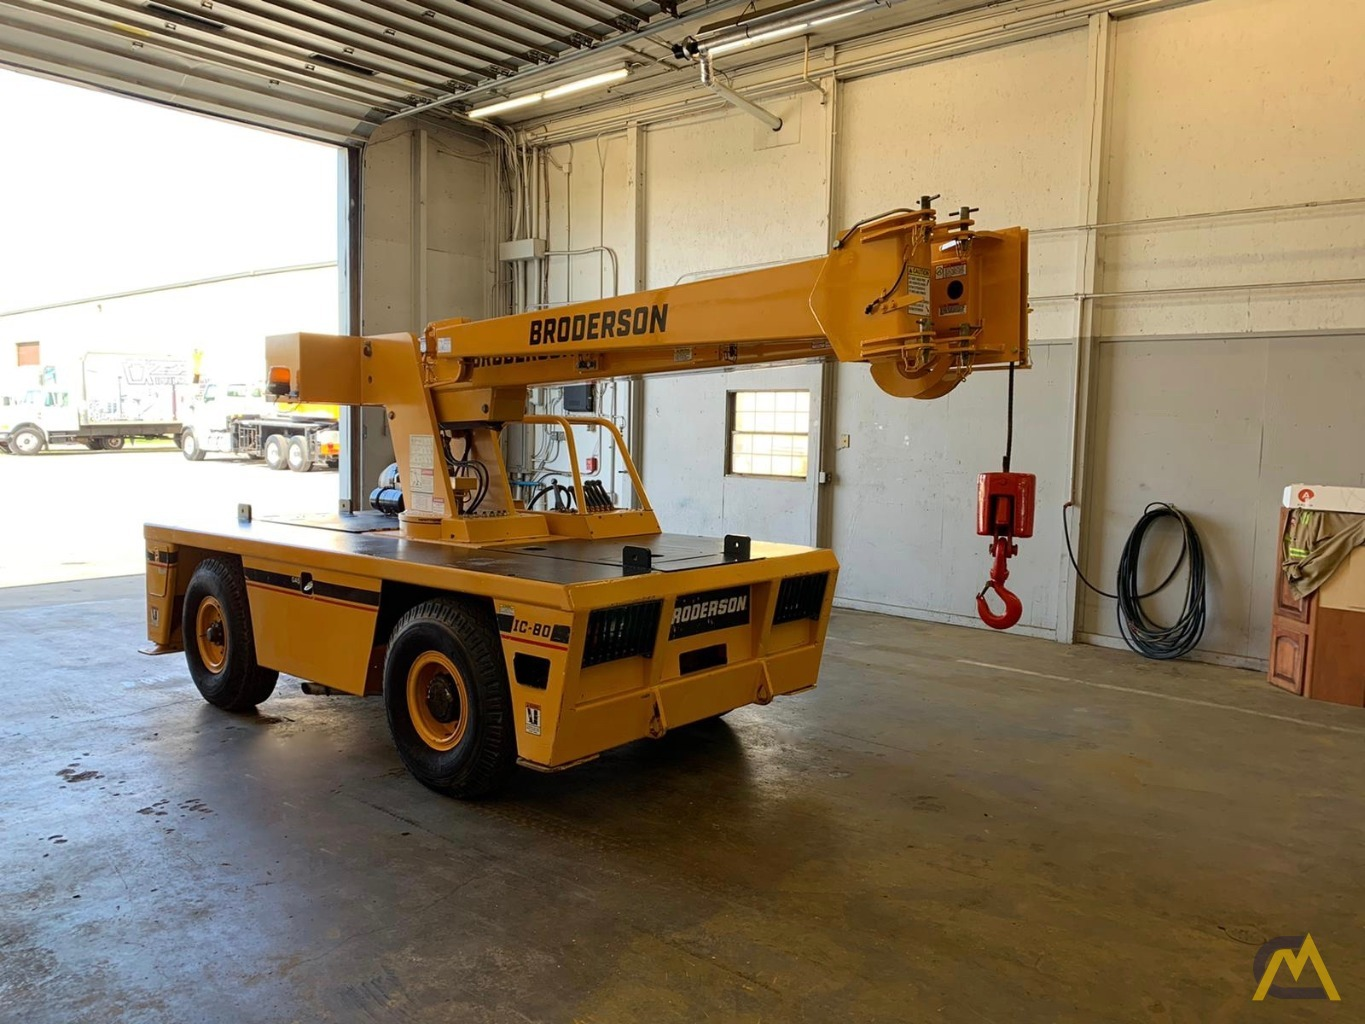 Broderson IC-80-3F 9-Ton Compact Carry Deck Crane 7